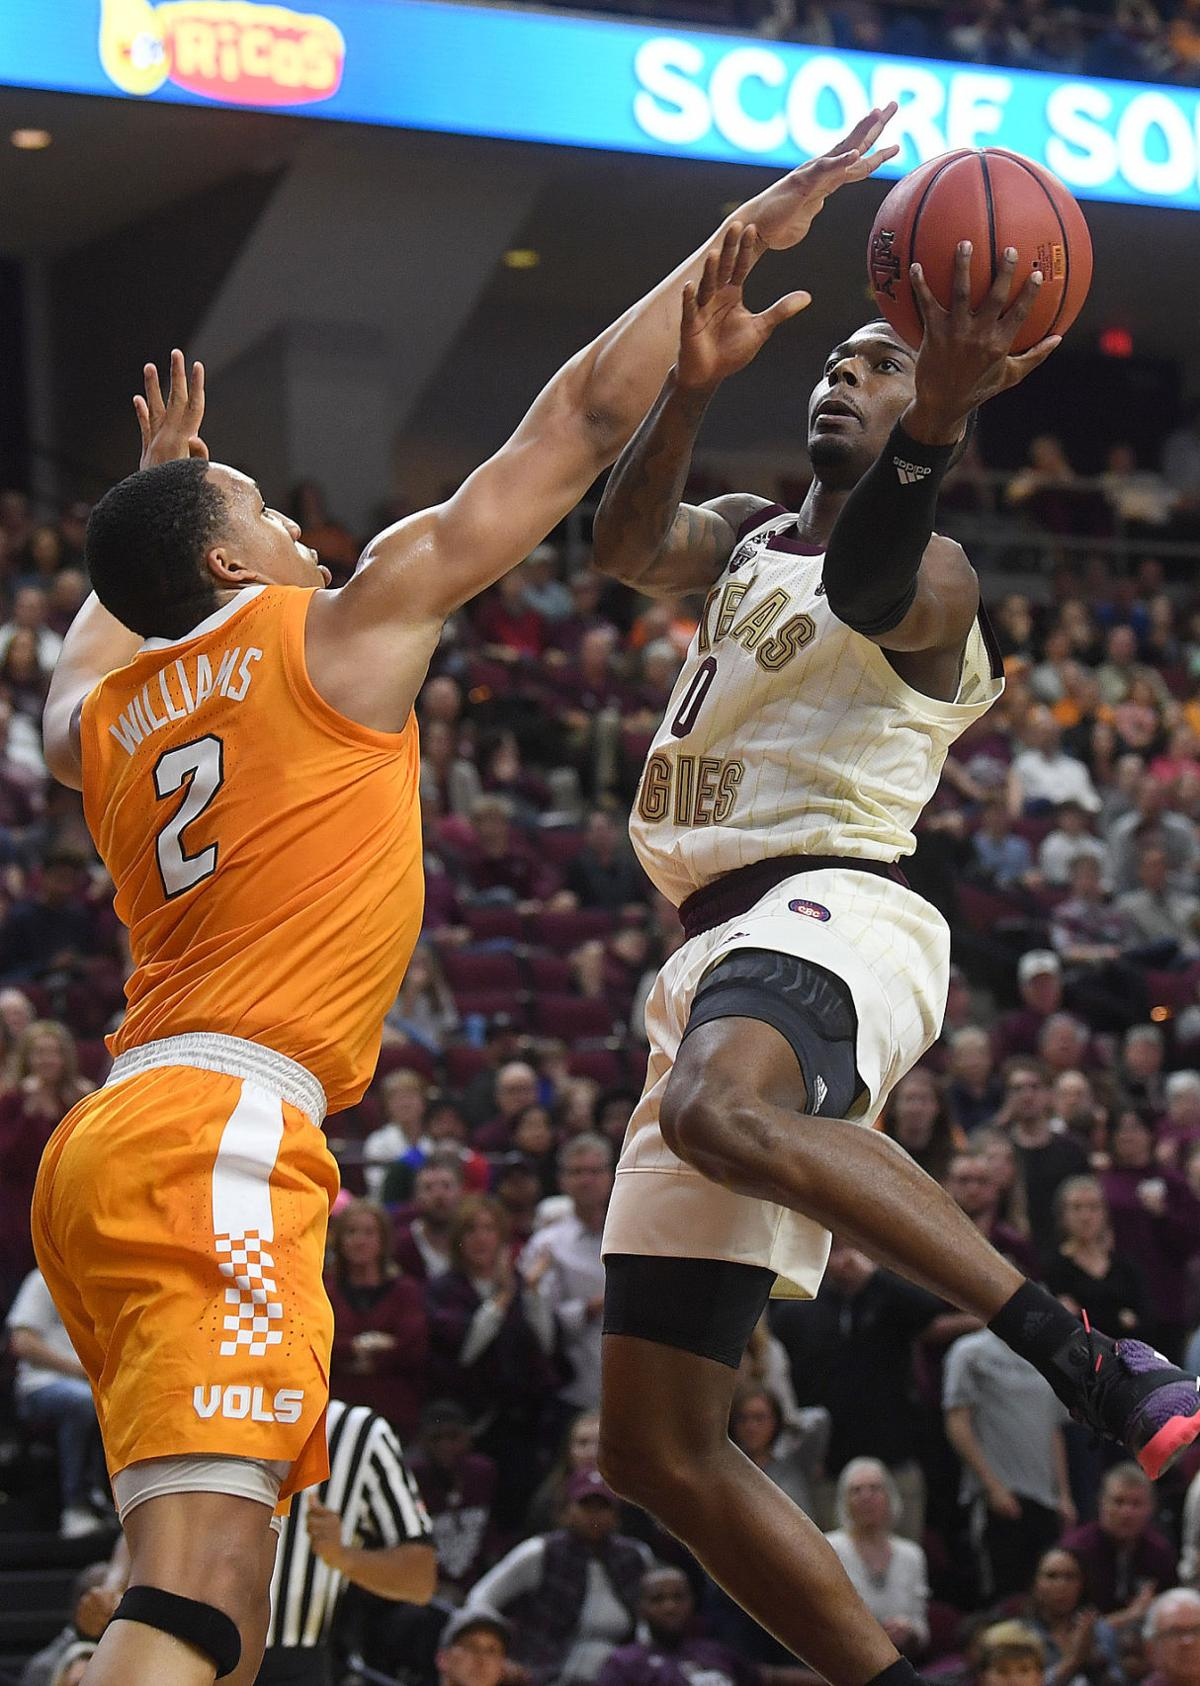 Texas A&M vs. Tennessee men's basketball